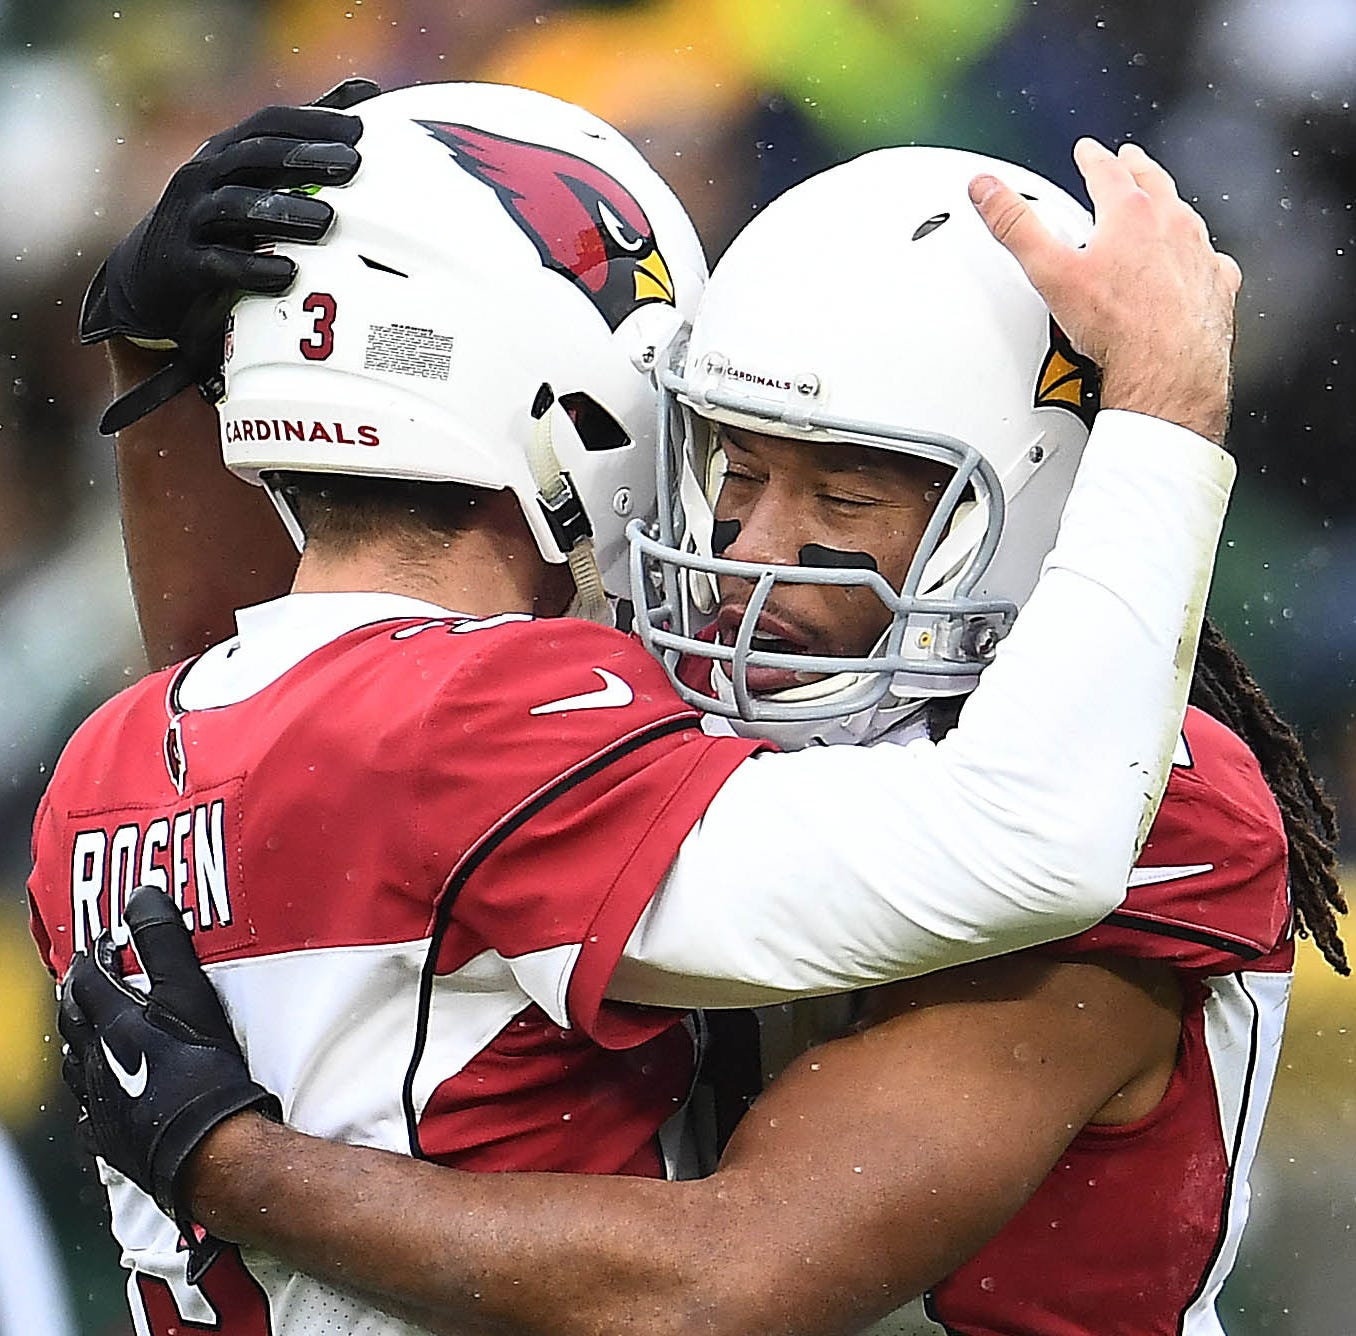 Cardinals' Larry Fitzgerald defends Josh Rosen: 'He has a bright future ahead of him'